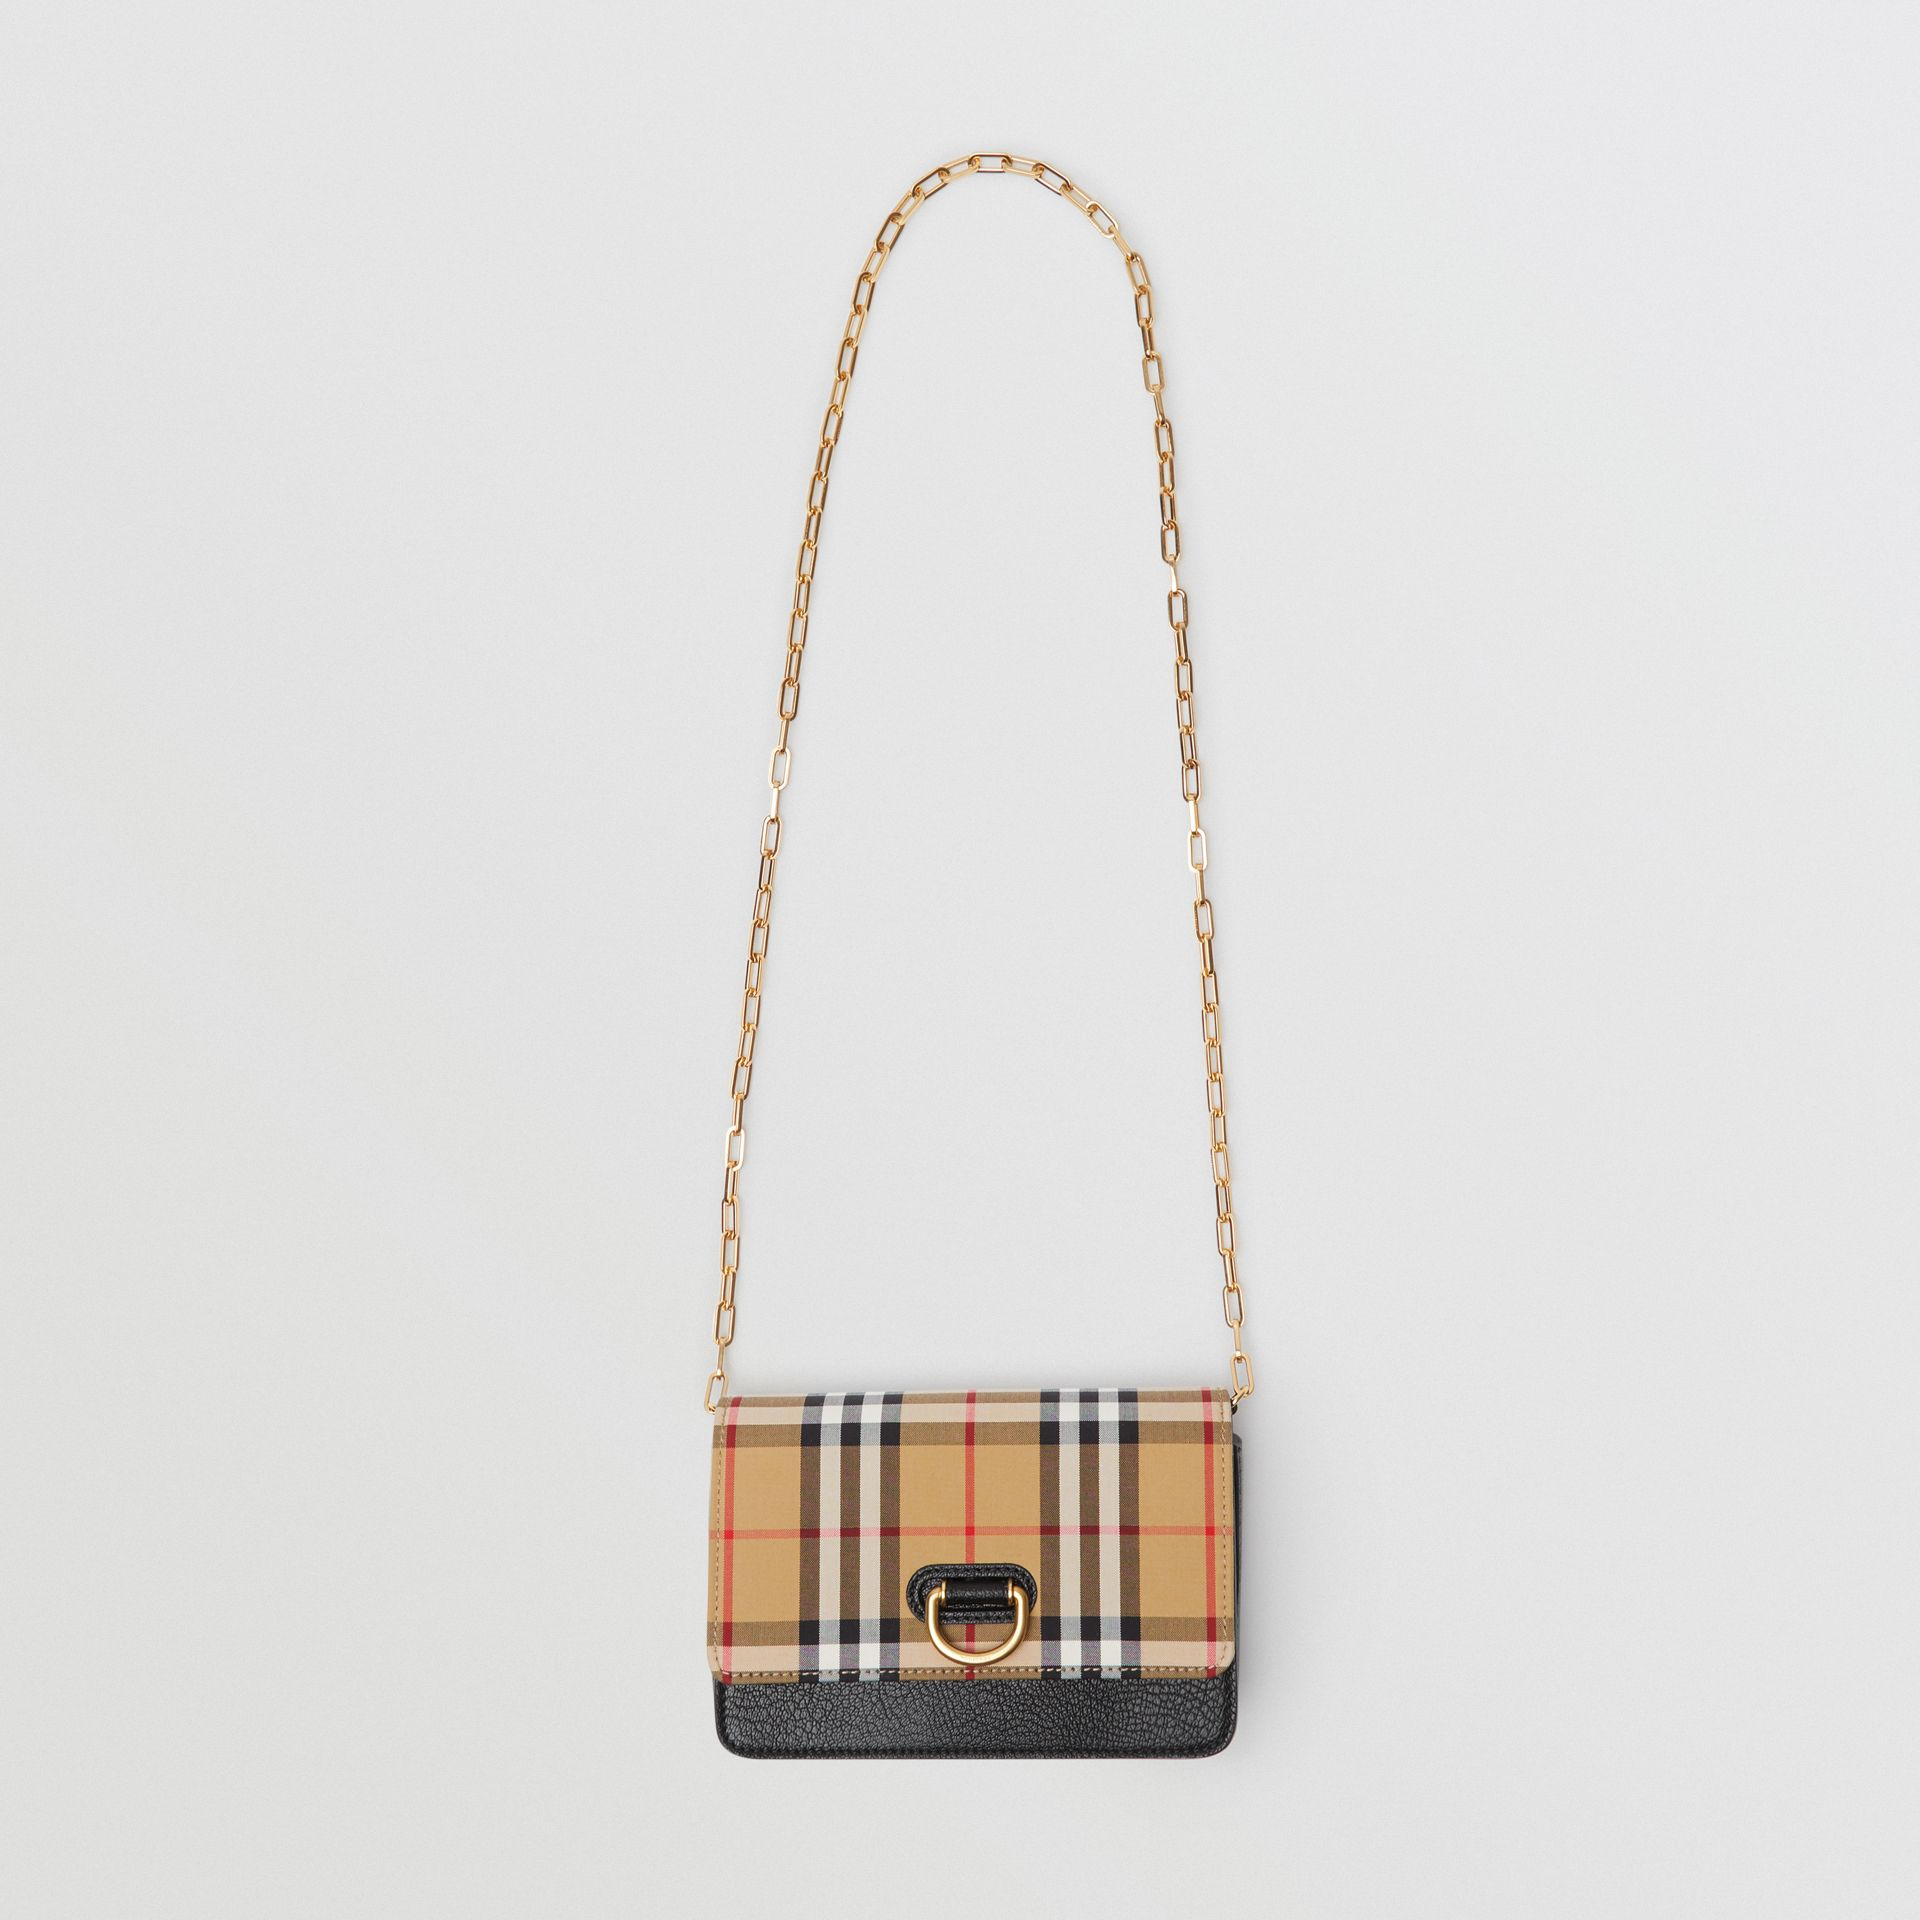 Borsa The D-ring mini in pelle con motivo Vintage check (Nero) - Donna | Burberry - immagine della galleria 3